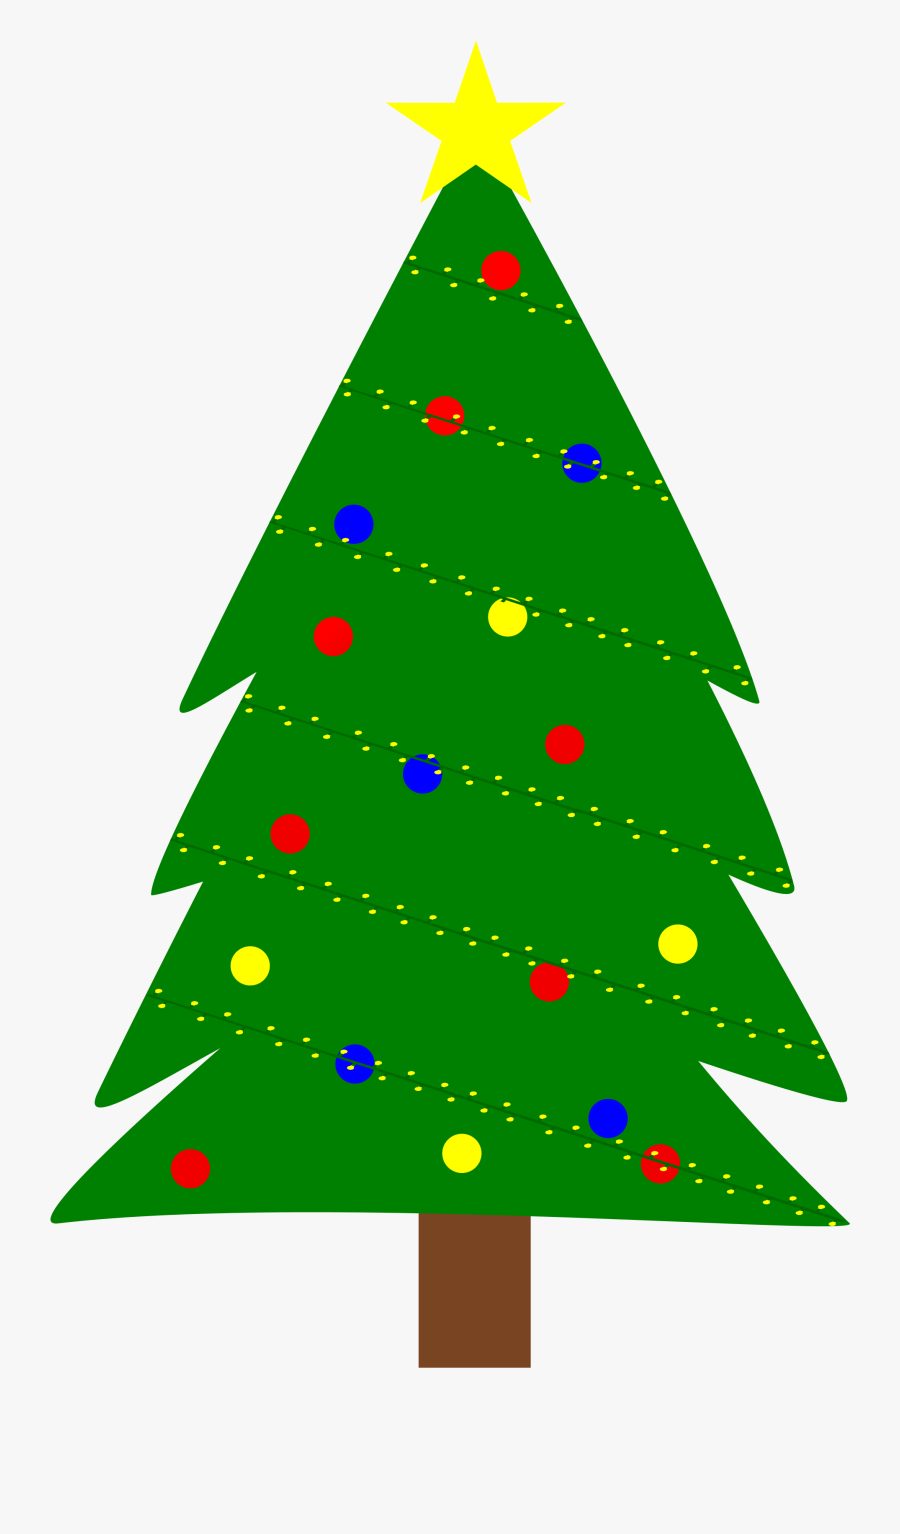 Triangle Christmas Tree Clipart, Transparent Clipart